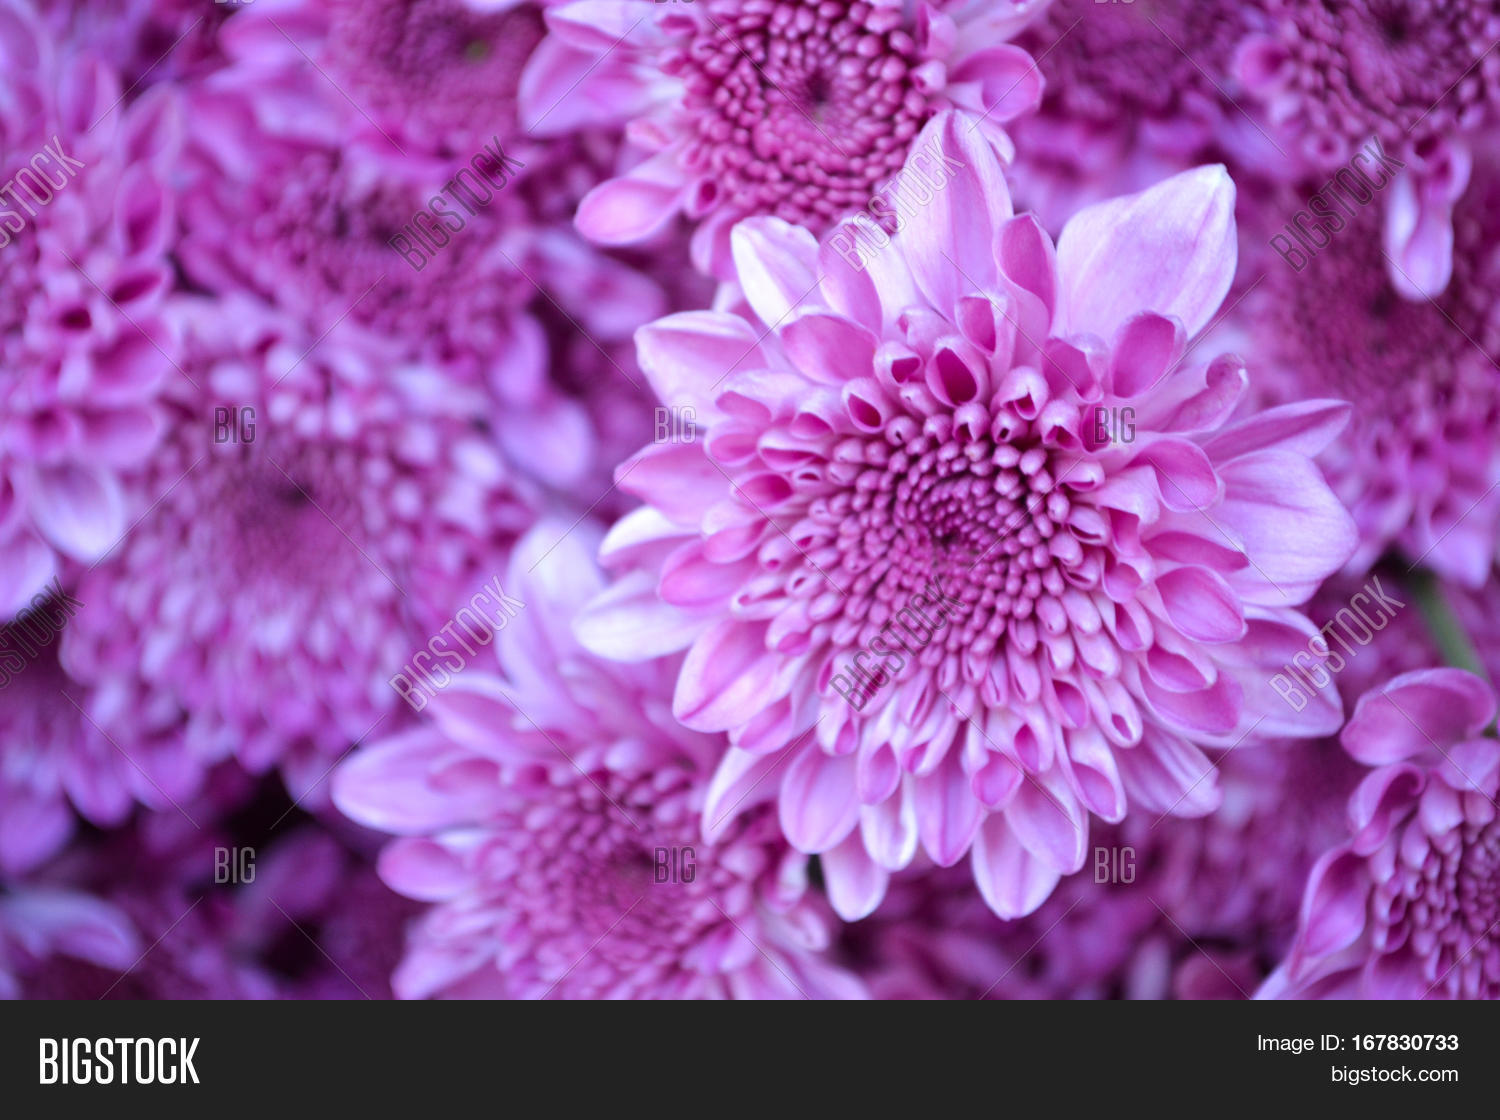 These Are Pink Flowers Called Chrysanthemum Or Florist S Mun Mums And A Sacred